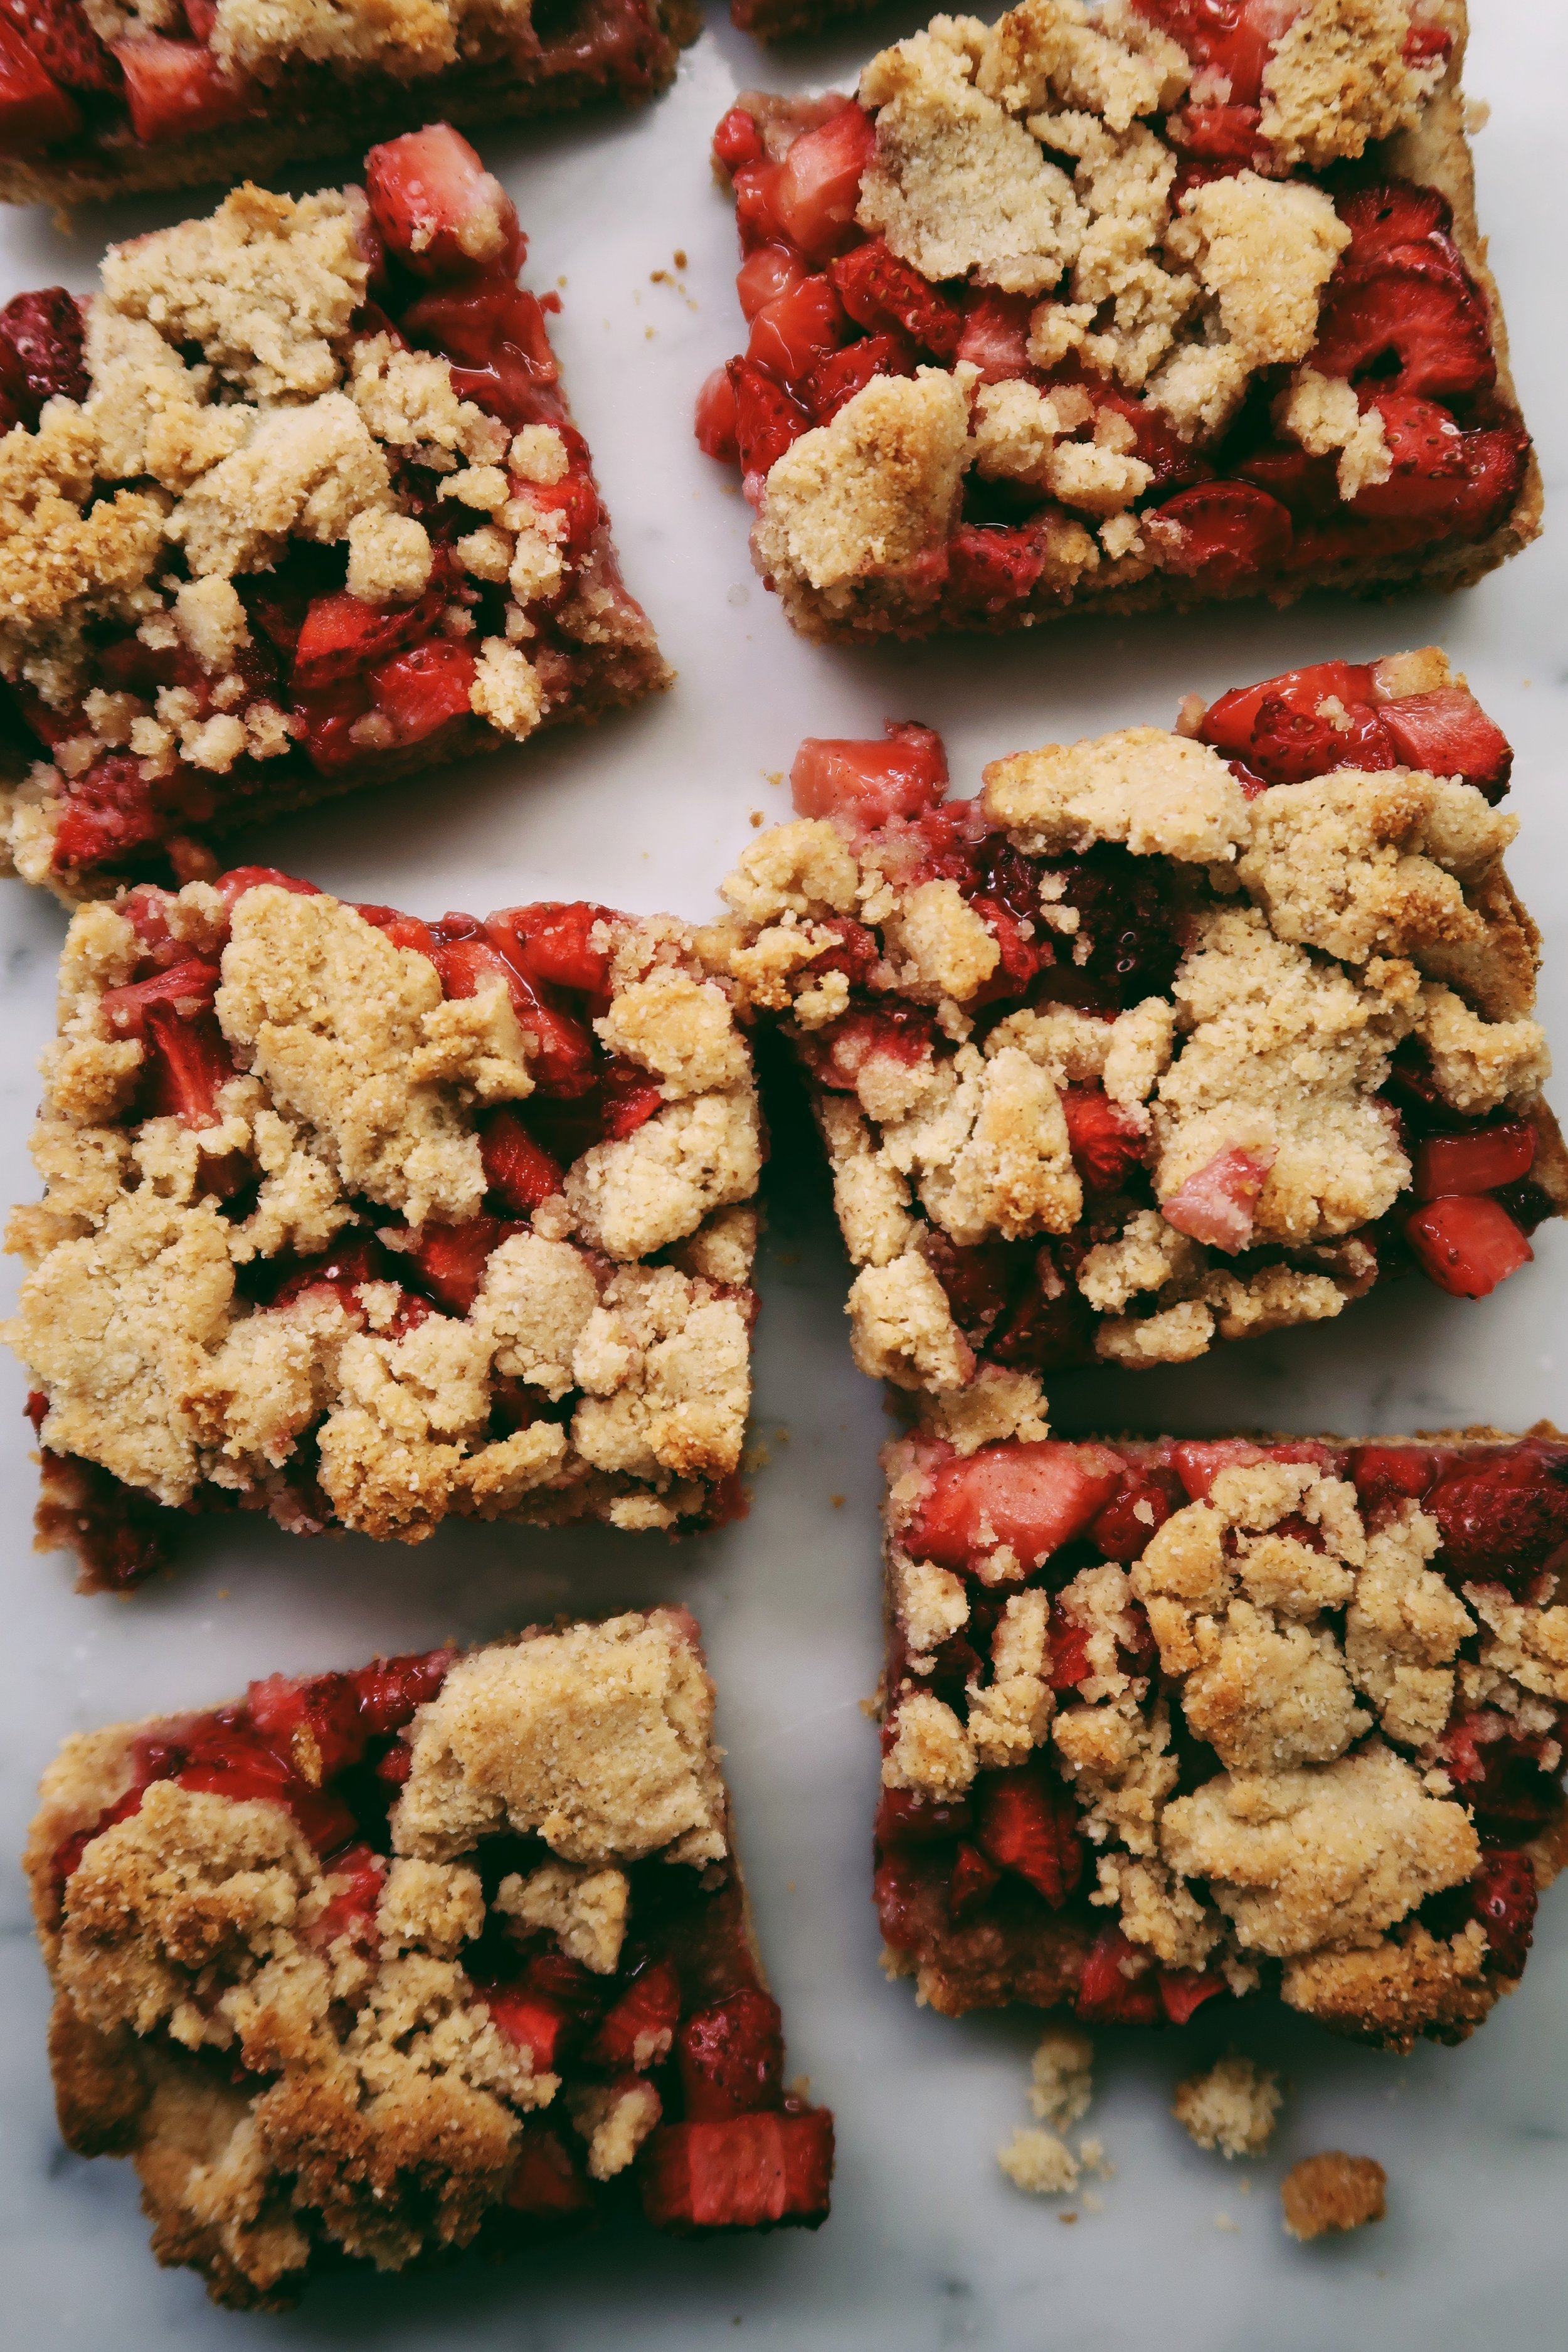 STRAWBERRY SHORTCAKE CRUMBLE BARS - INGREDIENTSTHE BARS:1 1/4 cups almond flour1 cup coconut flour3 tb almond butter (or nut butter of choice)1 tb cinnamon1/3 cup coconut oil, softened1/3 cup maple syrupTHE FILLING:3 1/2 cups roughly chopped strawberries1 tb arrowroot powder1.5 tb maple syrupolate